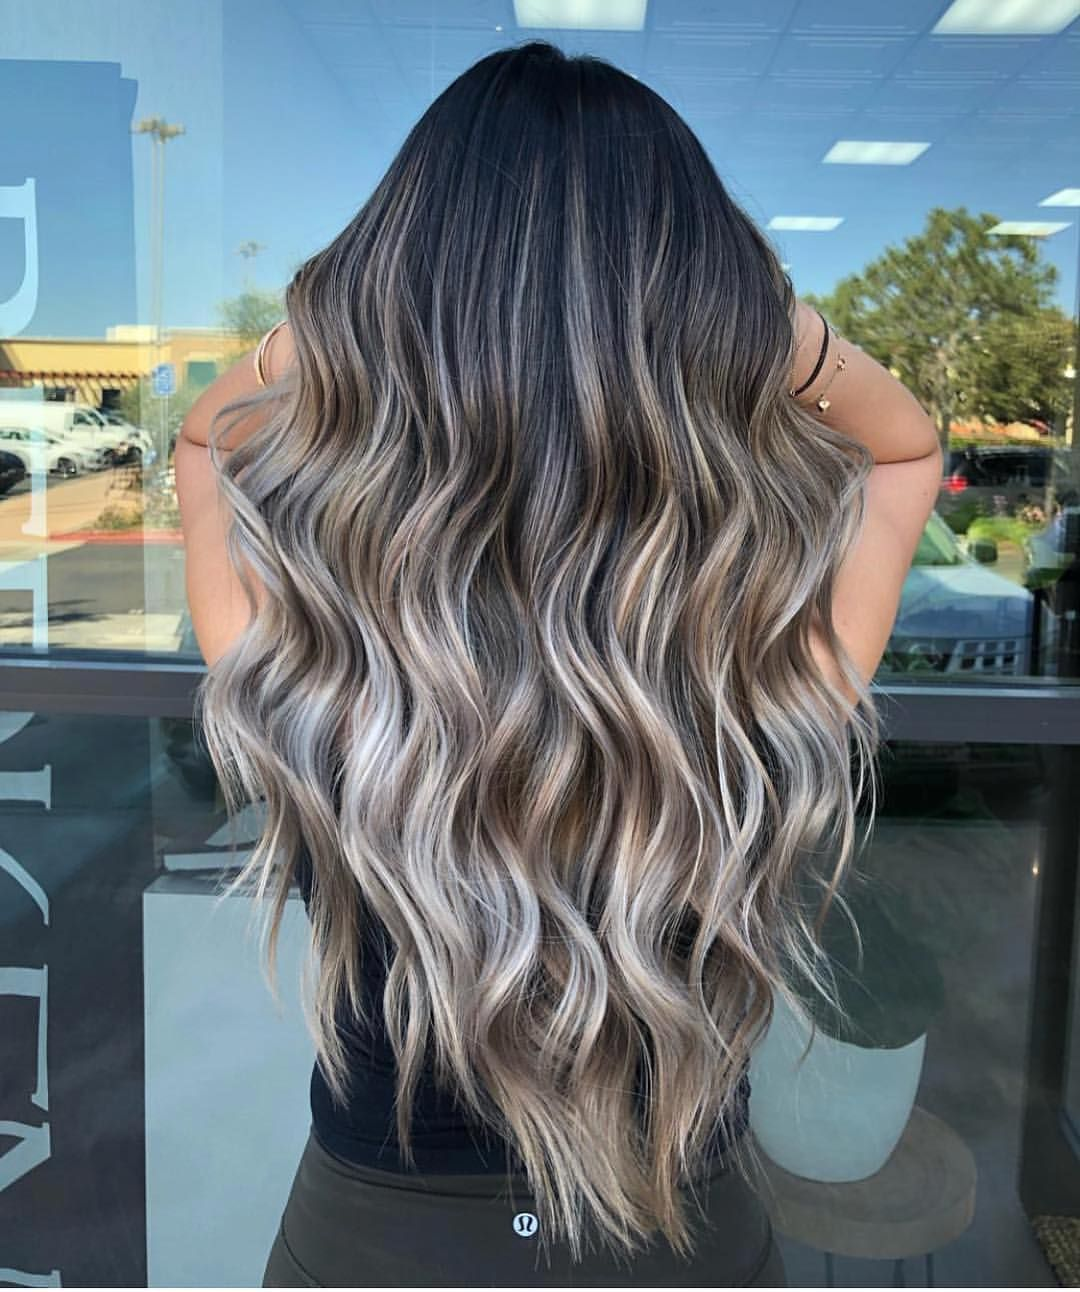 1 270 Likes 9 Comments Balayage Beautiful Hair Bestofbalayage On Instagram Fossil Fuel By Kimbe Balayage Hair Ash Blonde Balayage Balyage Long Hair